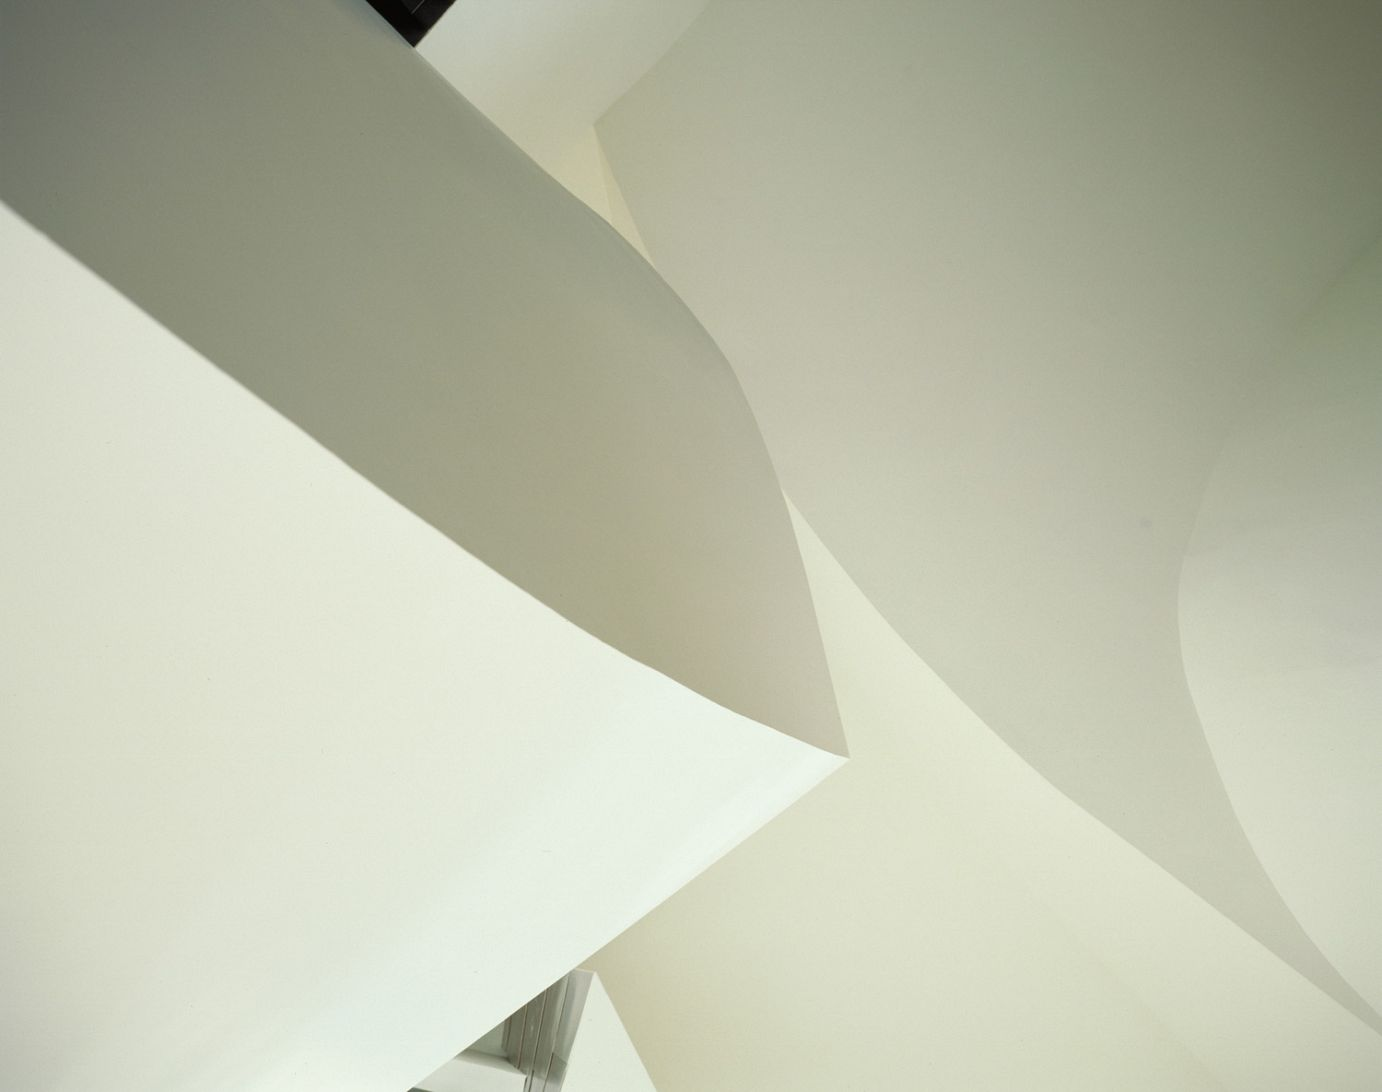 White walls inside the building | Guggenheim Bilbao Museoa